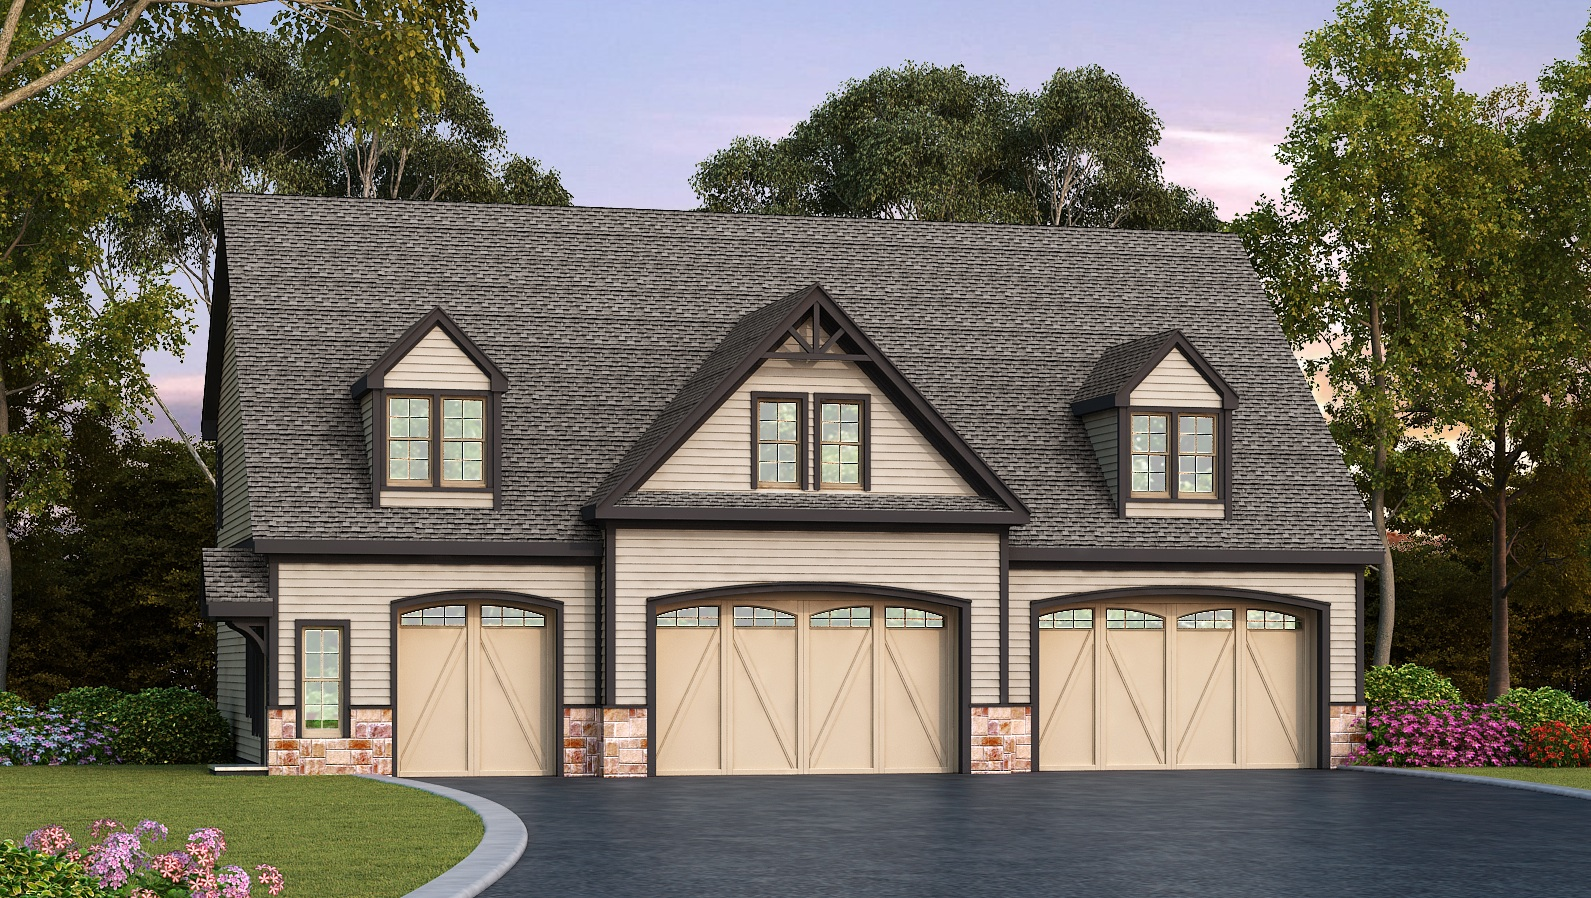 styles of homes residential 5 car garage plan 29870rl architectural 29870